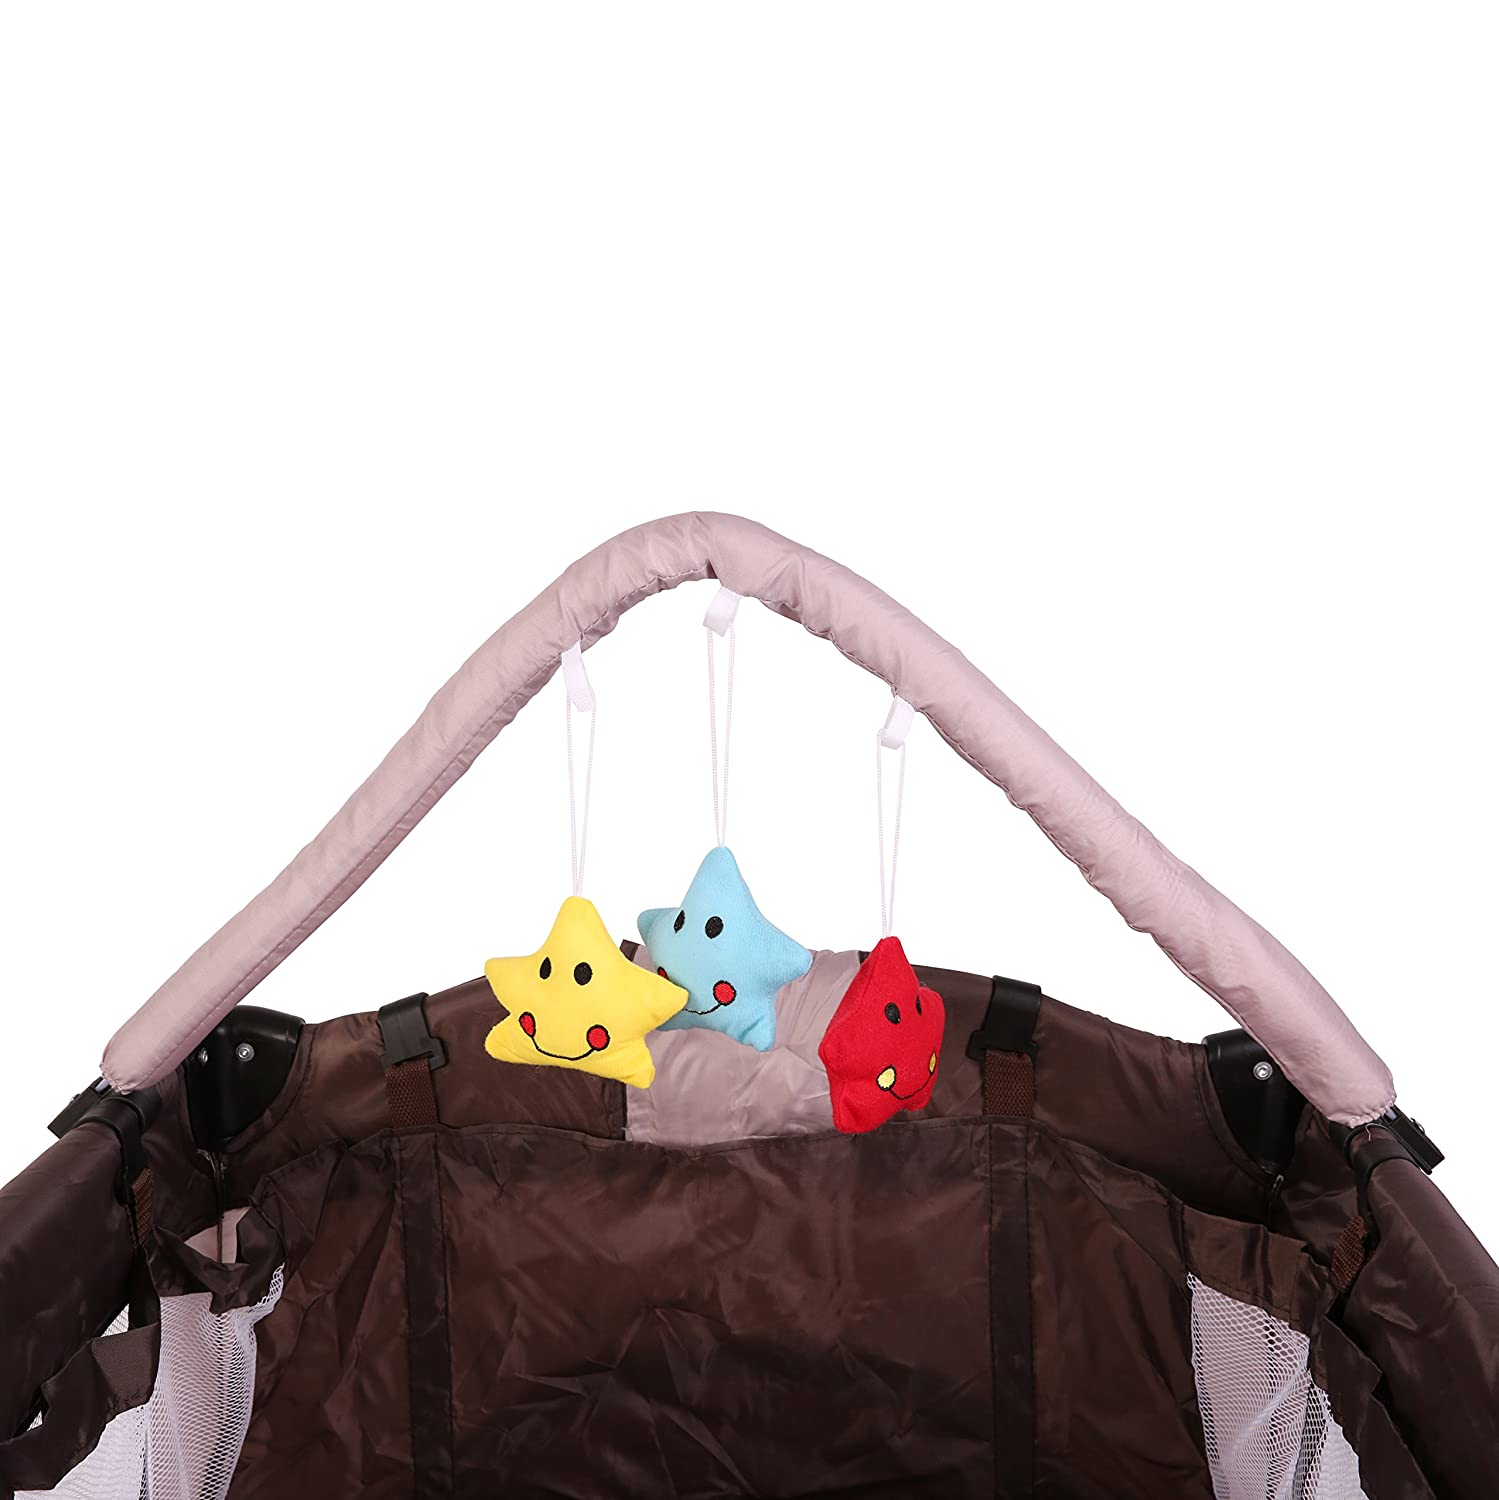 KIDUKU/® Baby bed travel cot crib portable child bed folding bed bedside cot playpen 6 different colours second level for infants//babies Brown height-adjustable